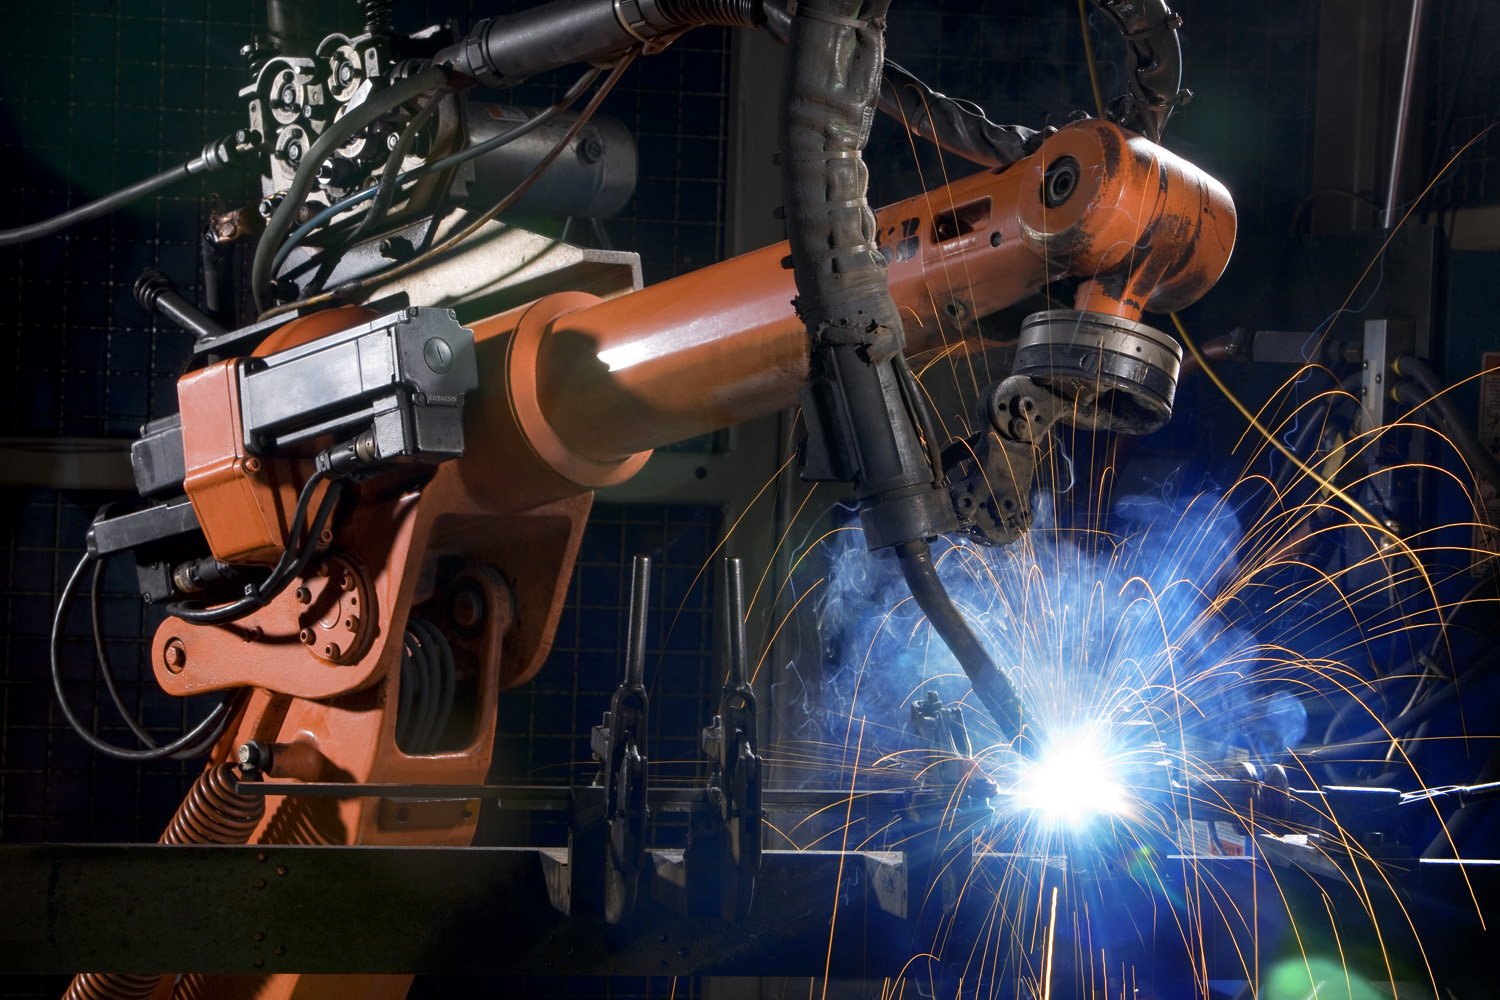 2_Industrial_Welding_20-